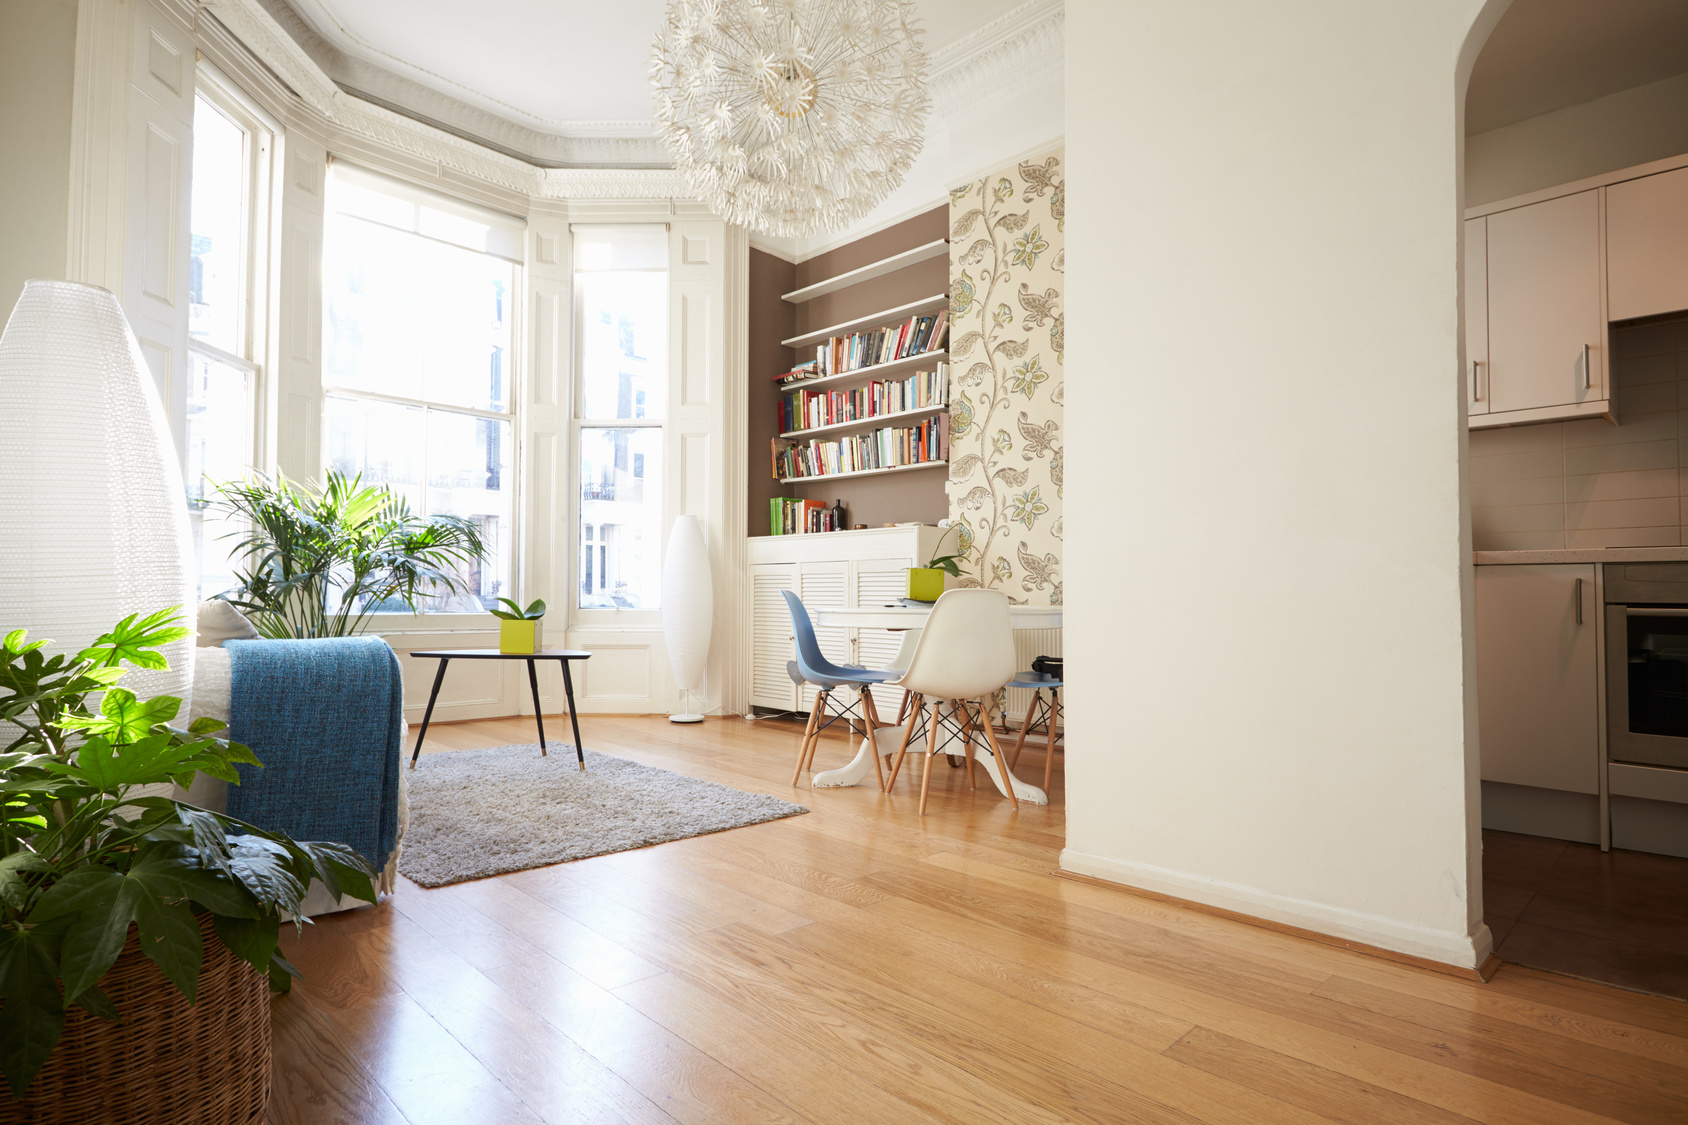 6 top tips to add style to any home